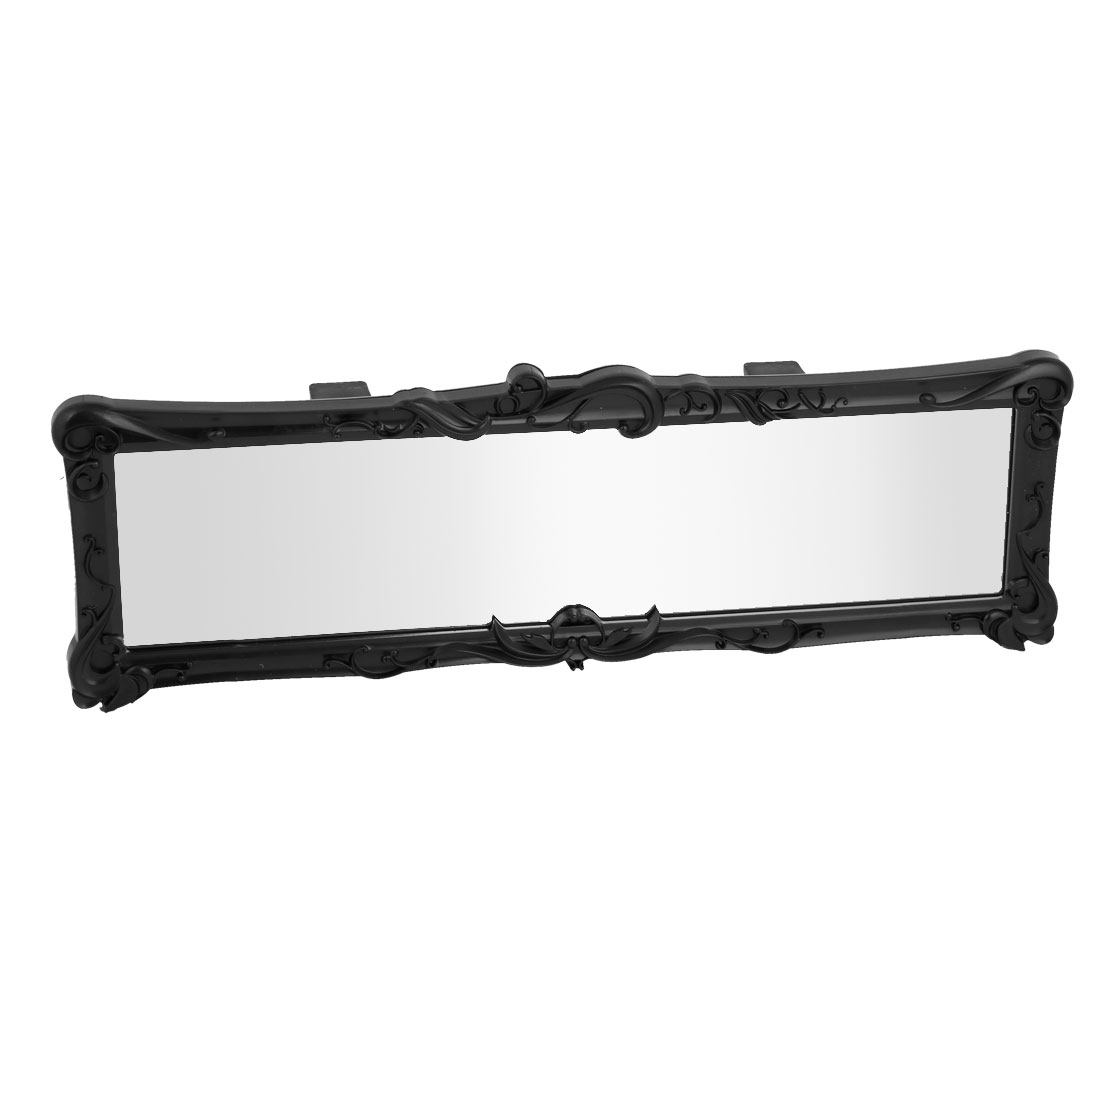 Black Clear Plastic Frame Flat Glass Rearview Mirror for Car Auto